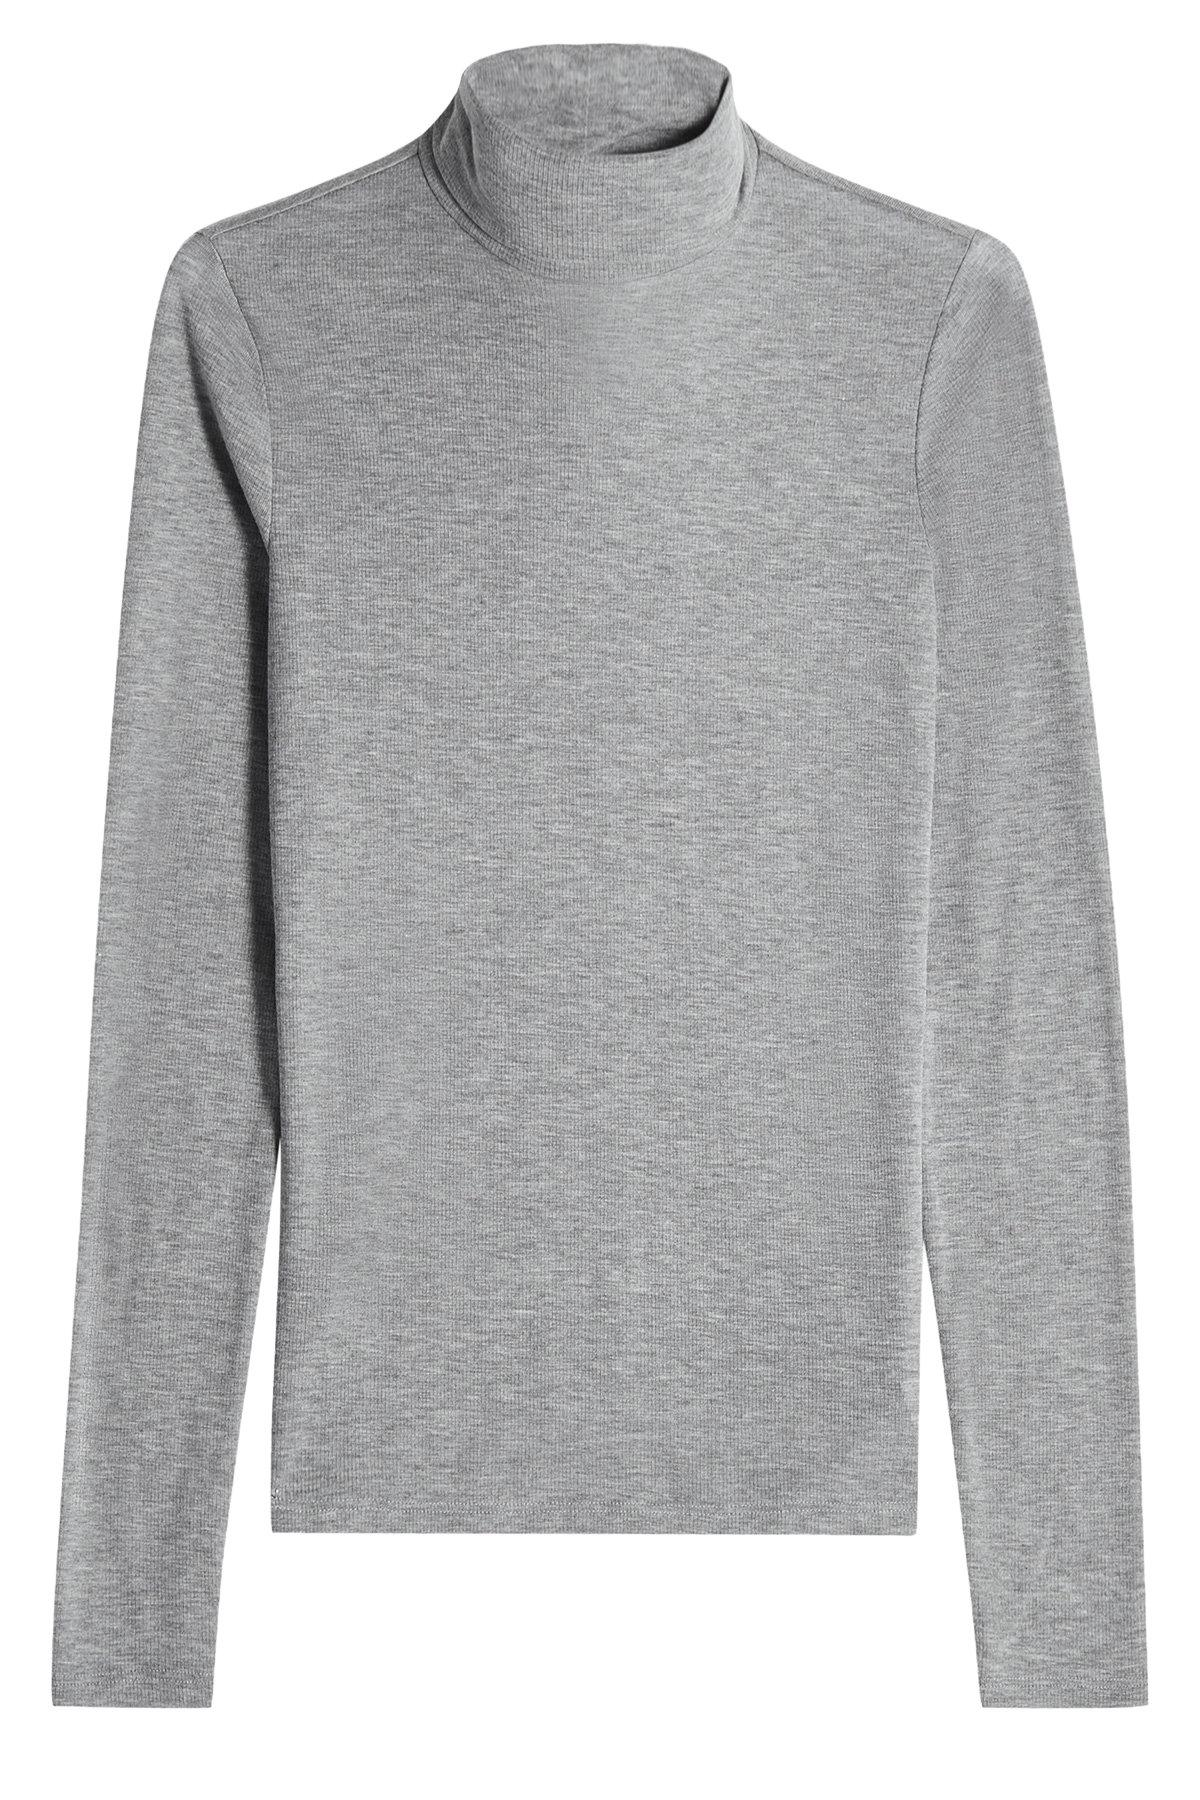 Theory Turtleneck Pullover In Grey